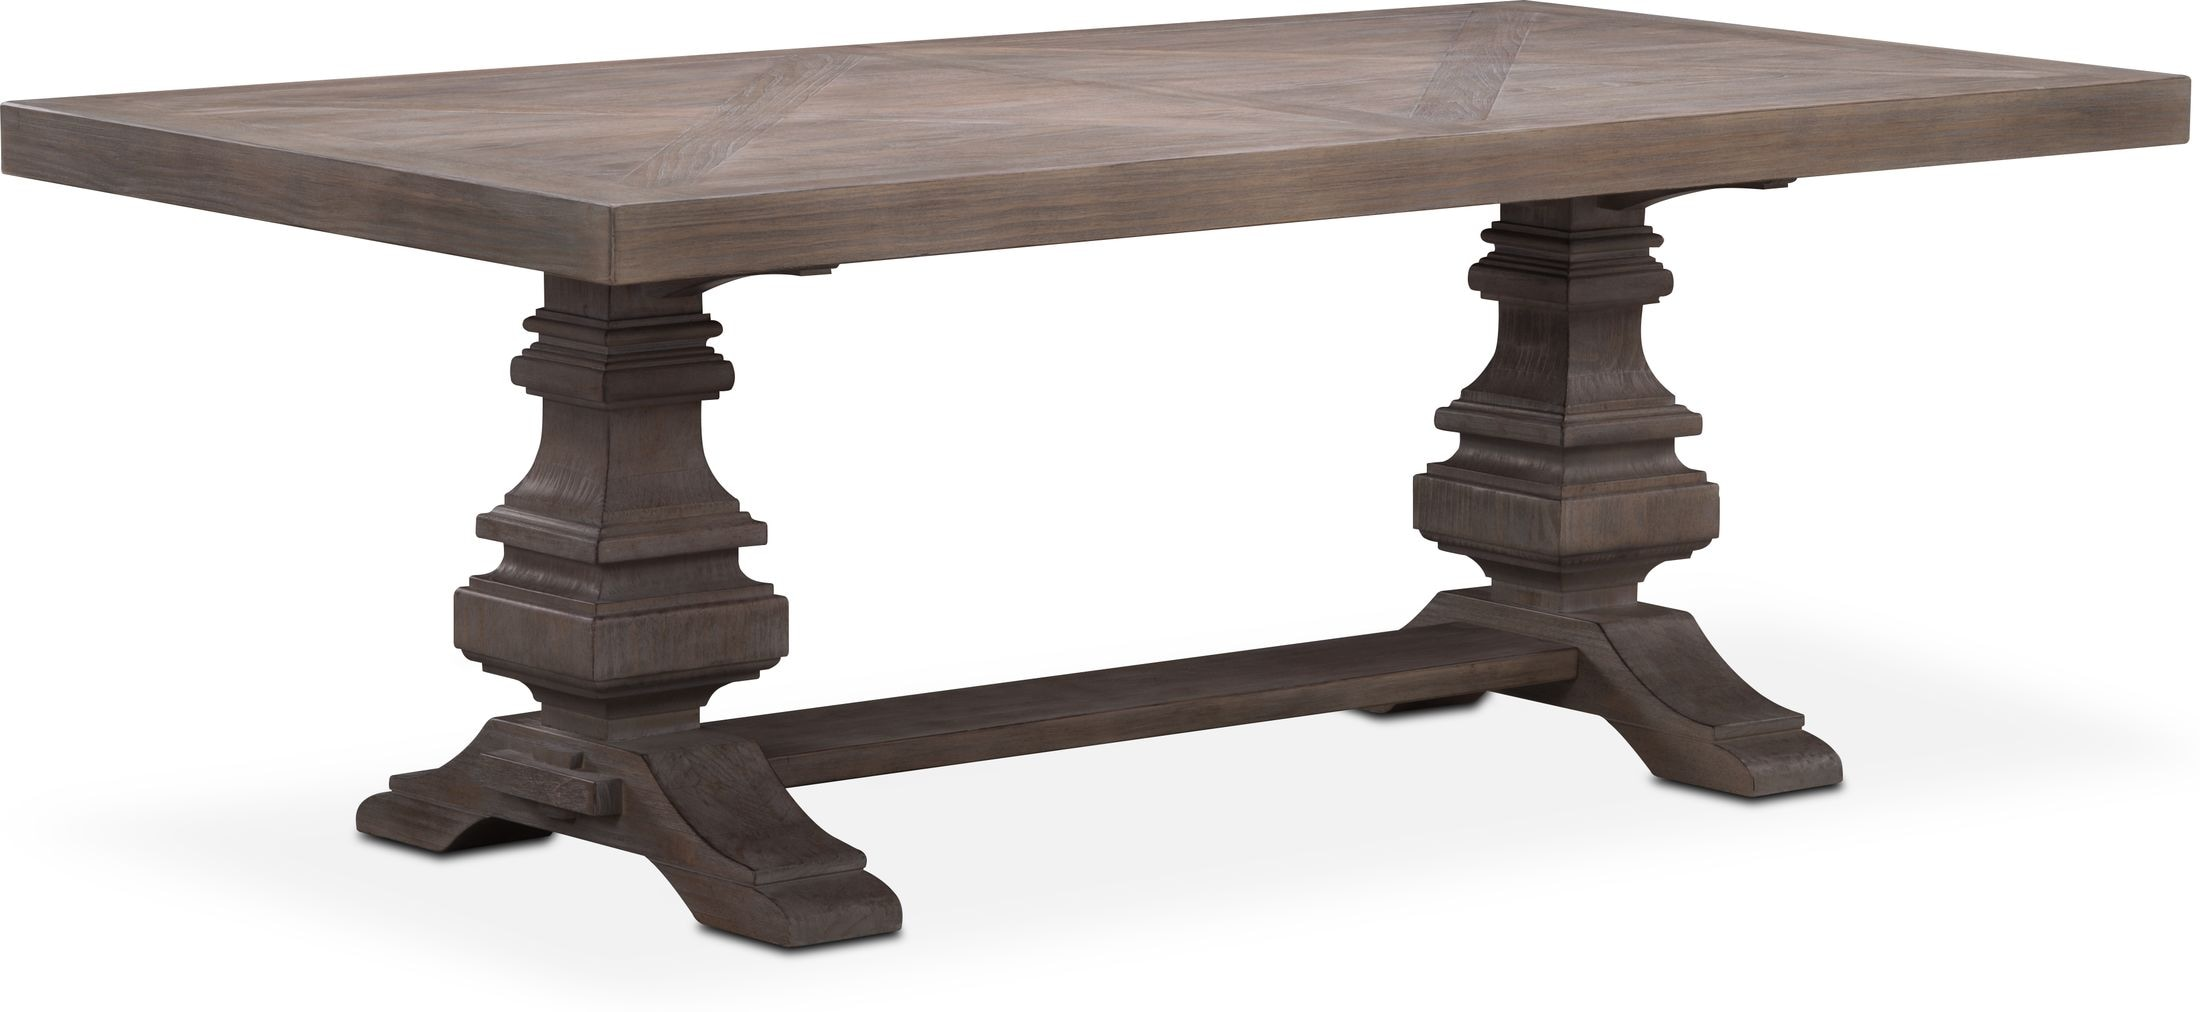 "Dining Room Furniture - Lancaster 82"" Dining Table"